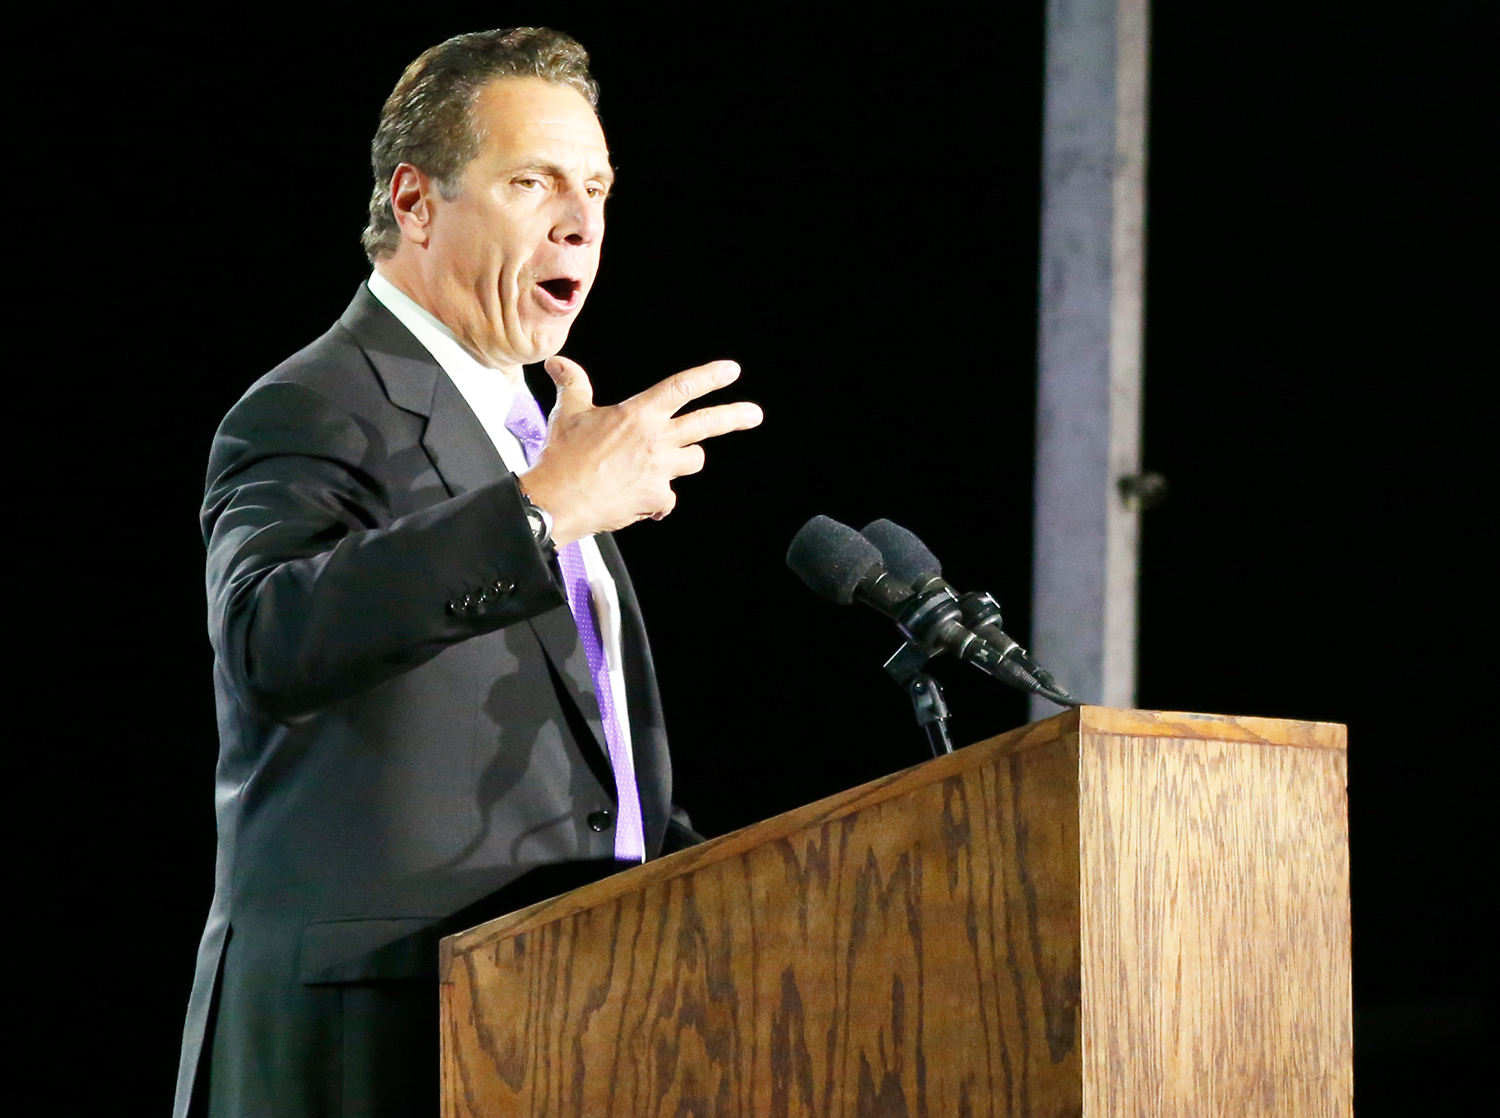 Andrew Cuomo speaks in support of Democratic presidential nominee Hillary Clinton during election night outside the Jacob K. Javits Convention Center in New York on November 8, 2016.